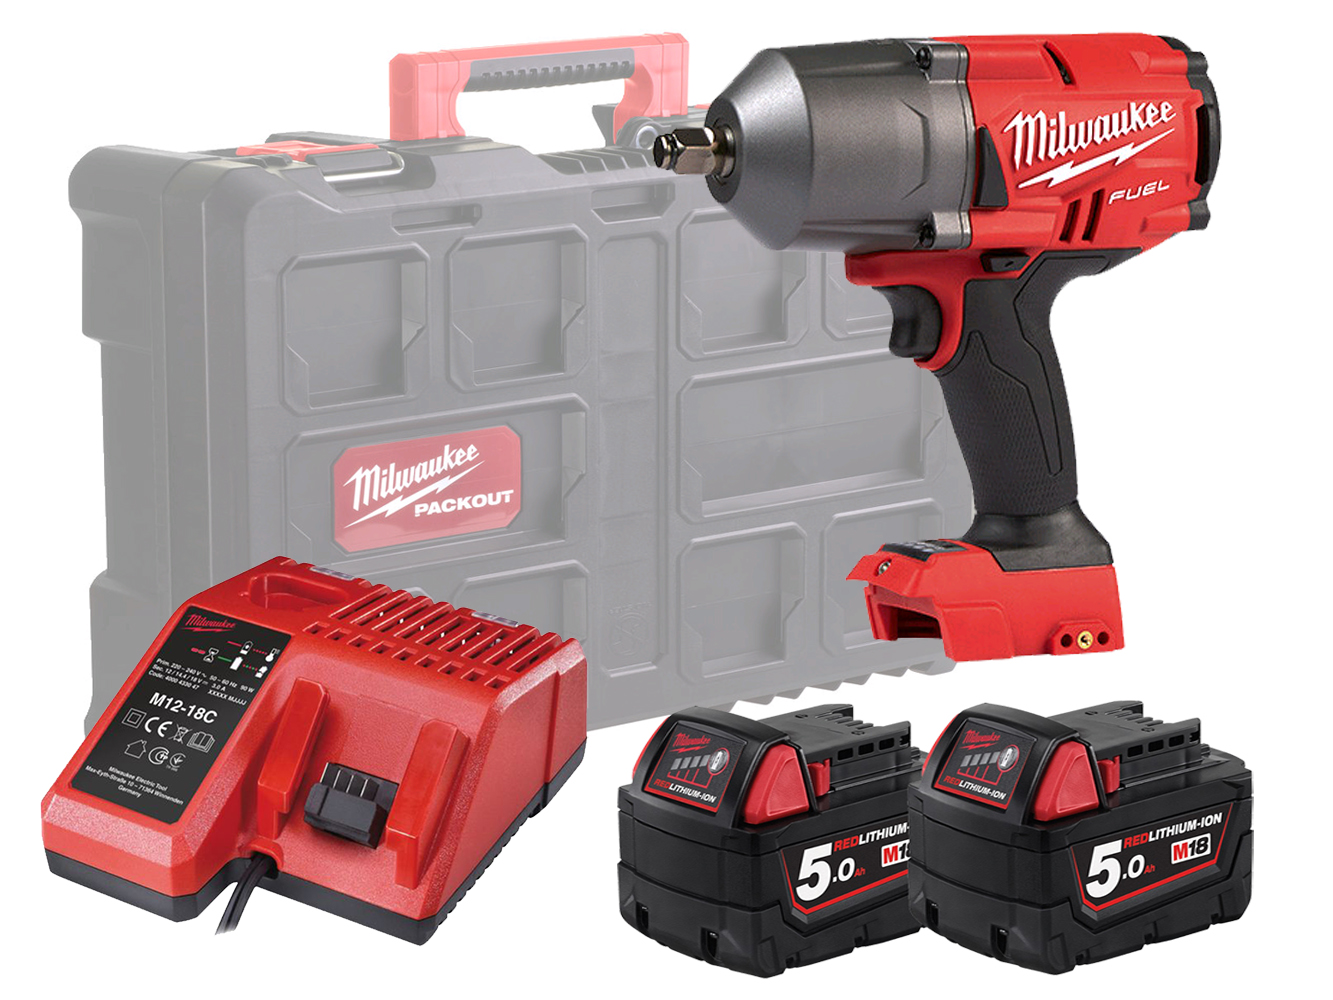 "MILWAUKEE 18V FUEL BRUSHLESS 1/2"" HIGH TORQUE WRENCH - M18FHIWF12 - 5.0AH PACK & PACKOUT"